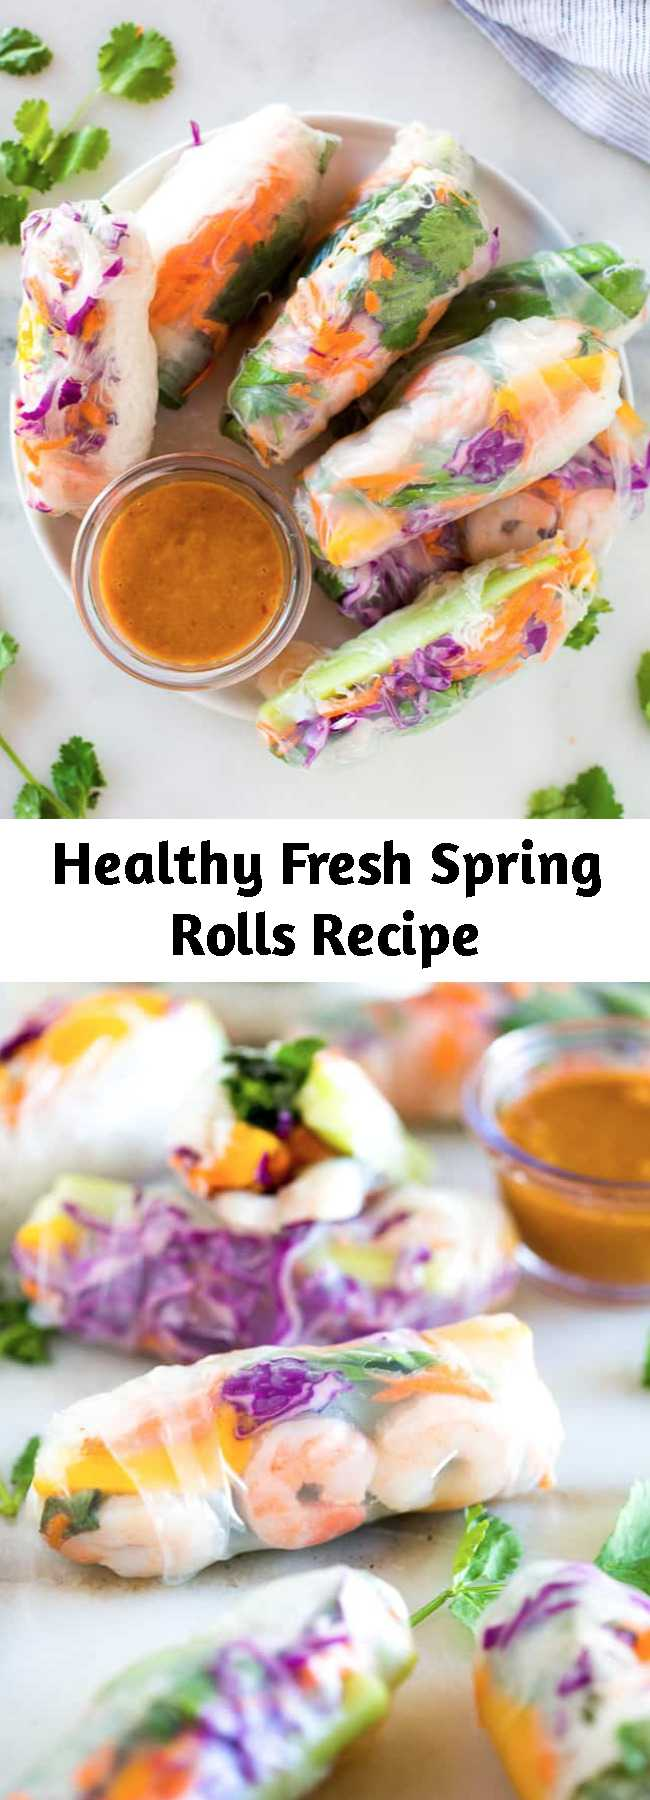 Healthy Fresh Spring Rolls Recipe - Look no further for restaurant-quality Spring Rolls that are unbelievably easy to make, delicious and healthy! These Fresh Spring Rolls are even better than you'd find at a restaurant. I like to serve them with homemade peanut sauce for dipping and they make a great light lunch, dinner or appetizer.